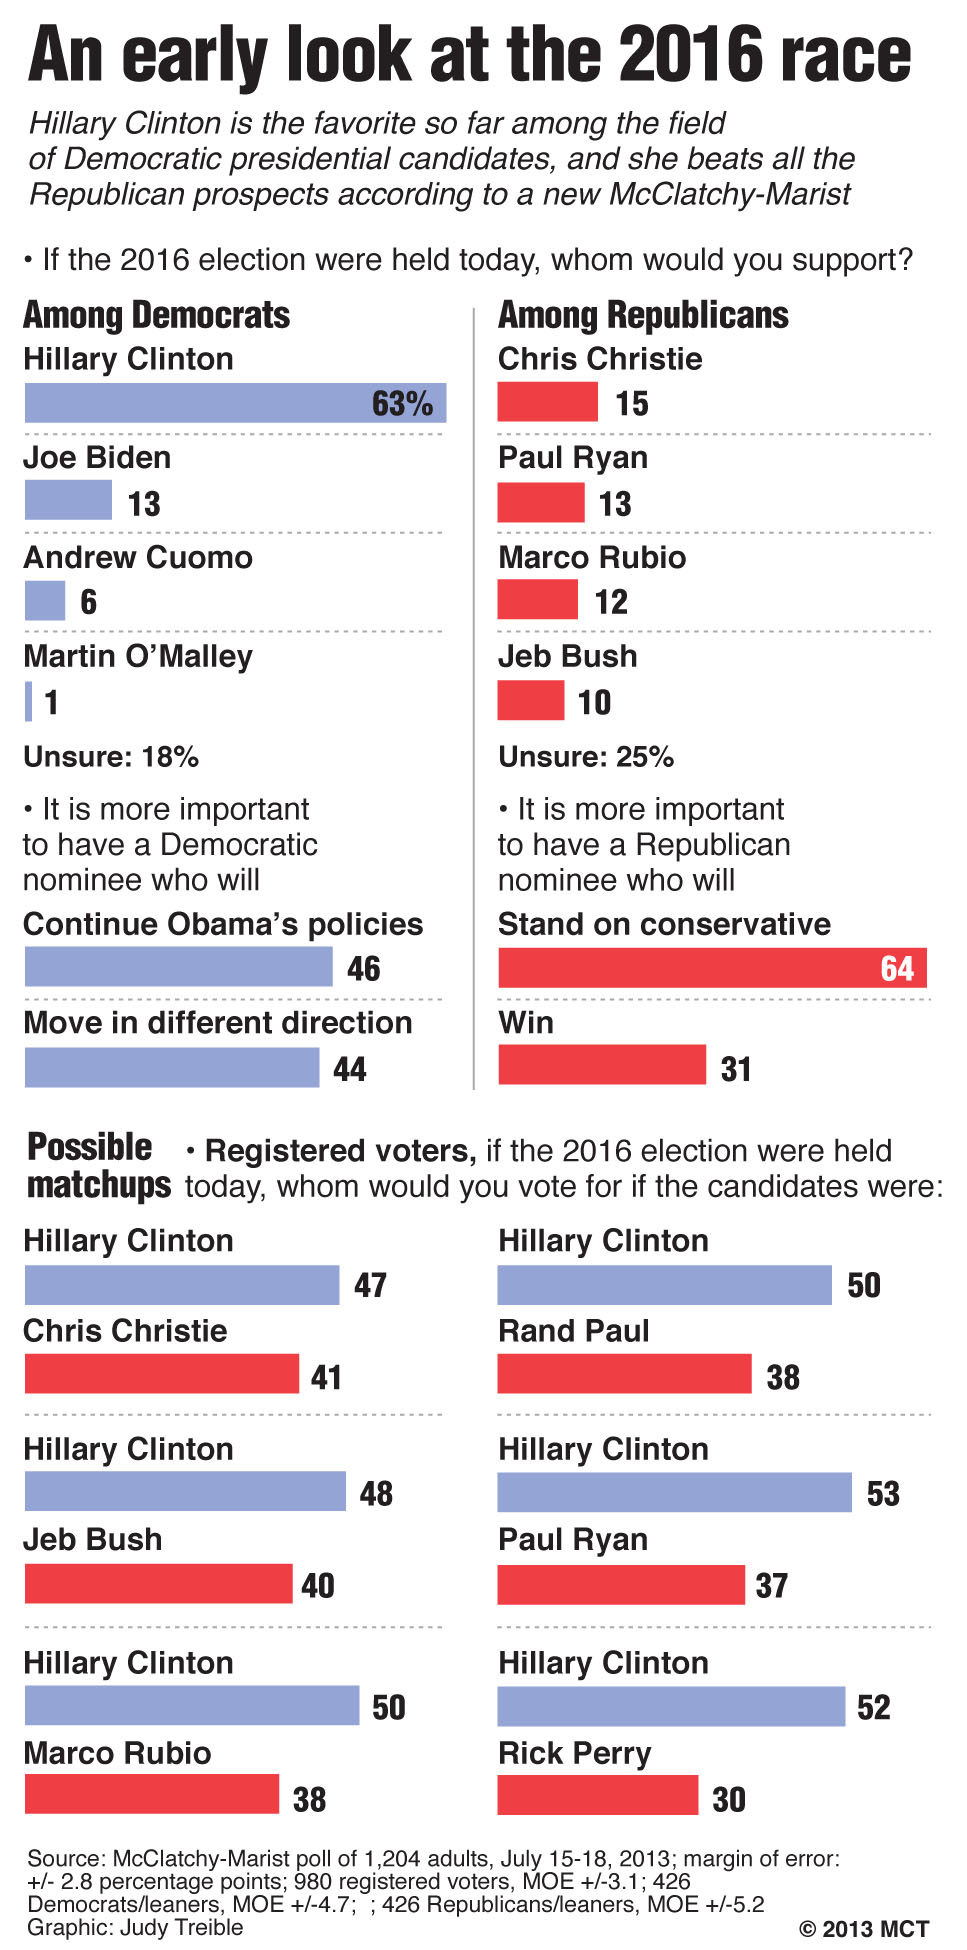 An early look at the 2016 race